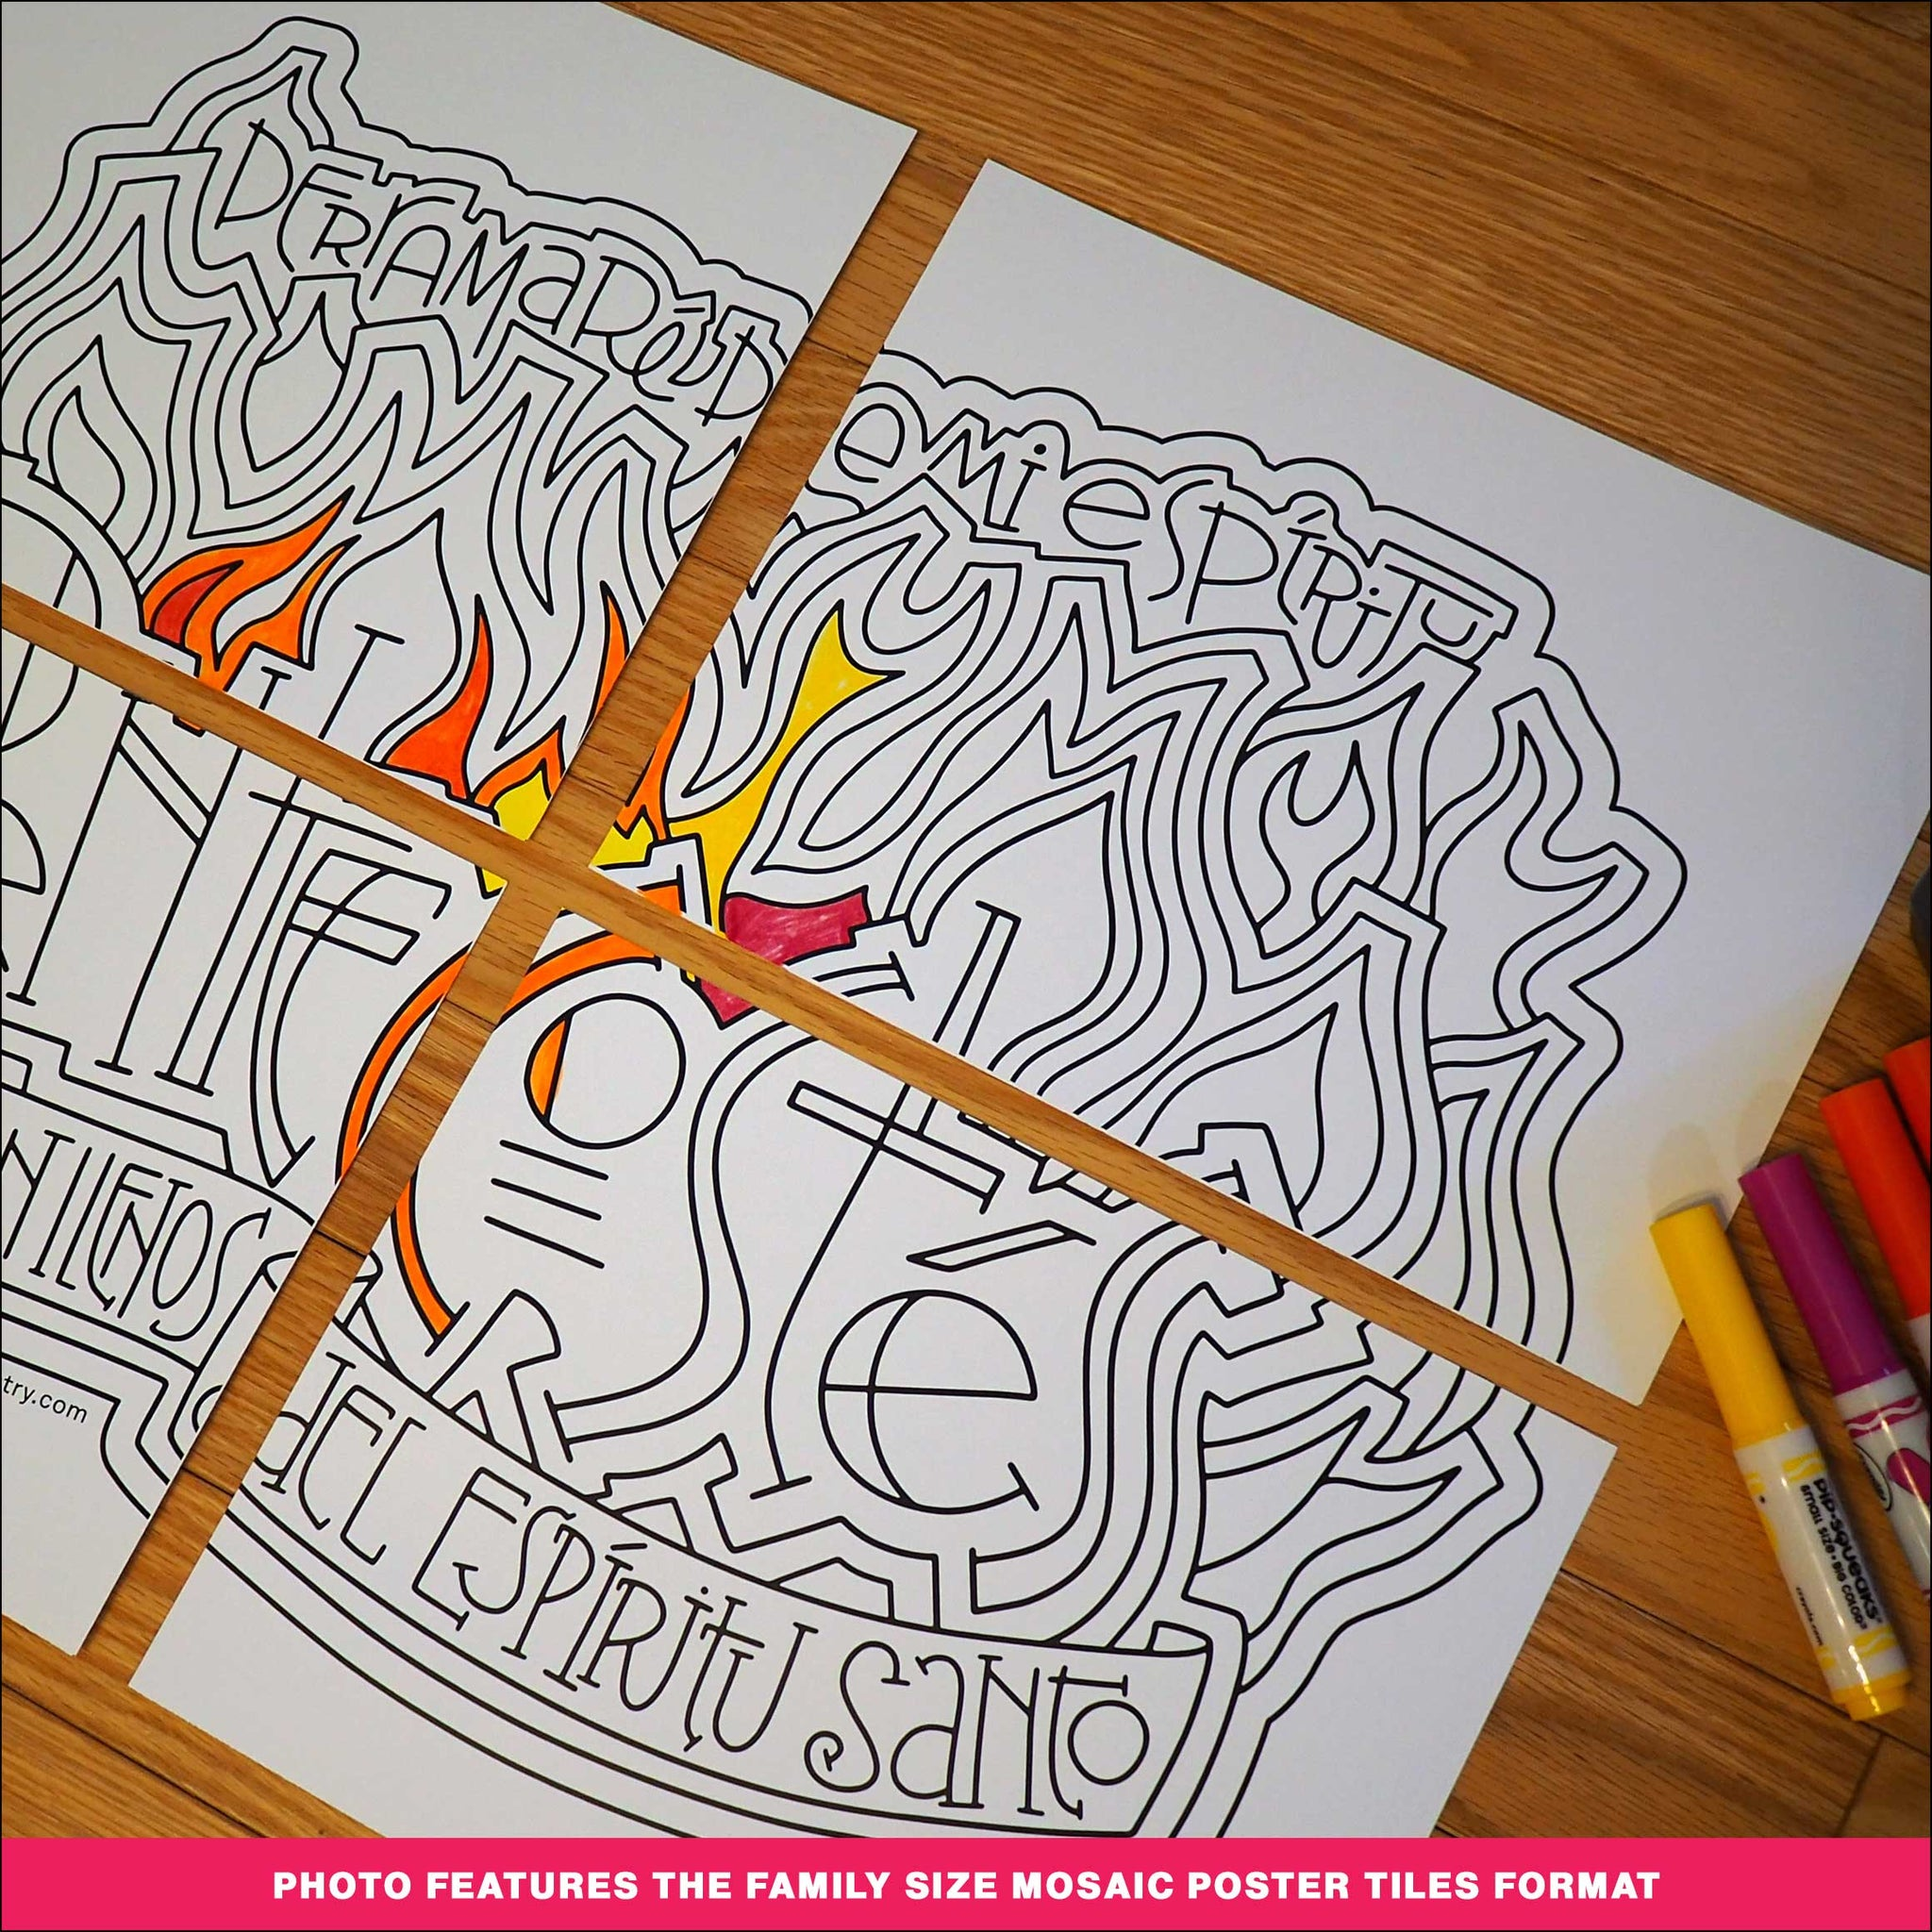 Pentecostés Coloring Page & Poster - Spanish-language Version